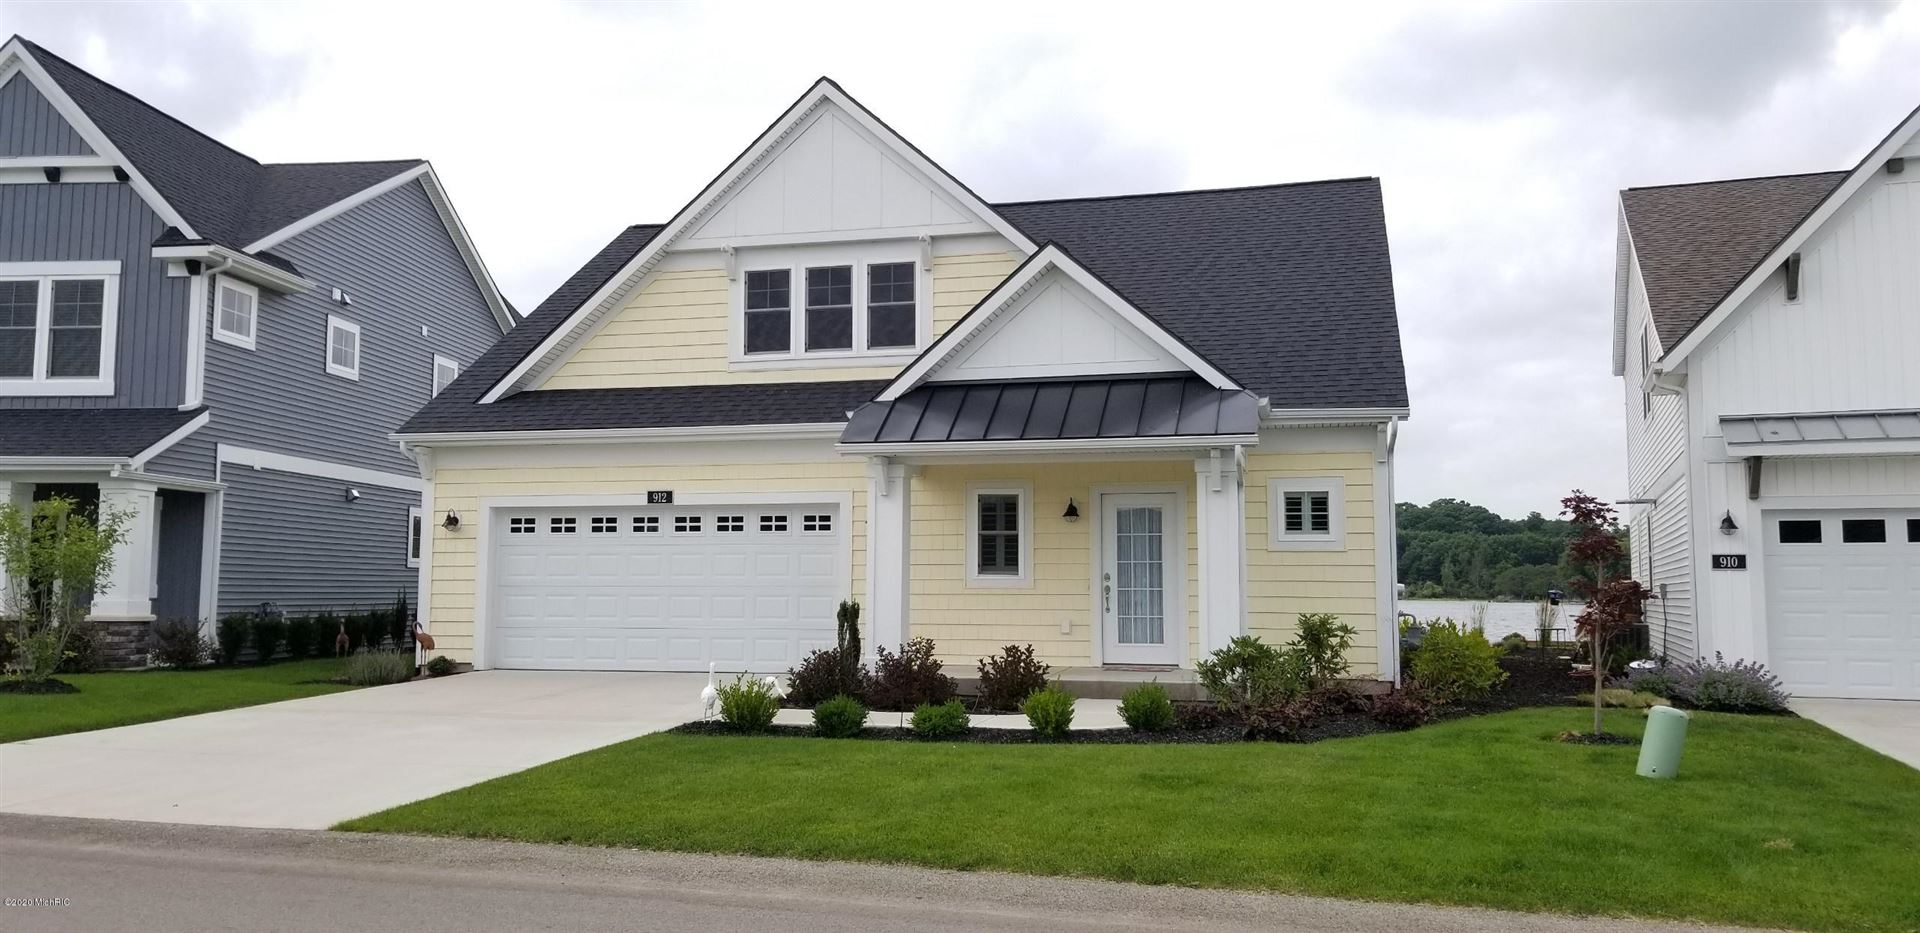 912 S Cove Circle, Whitehall, MI 49461 - MLS#: 20029163